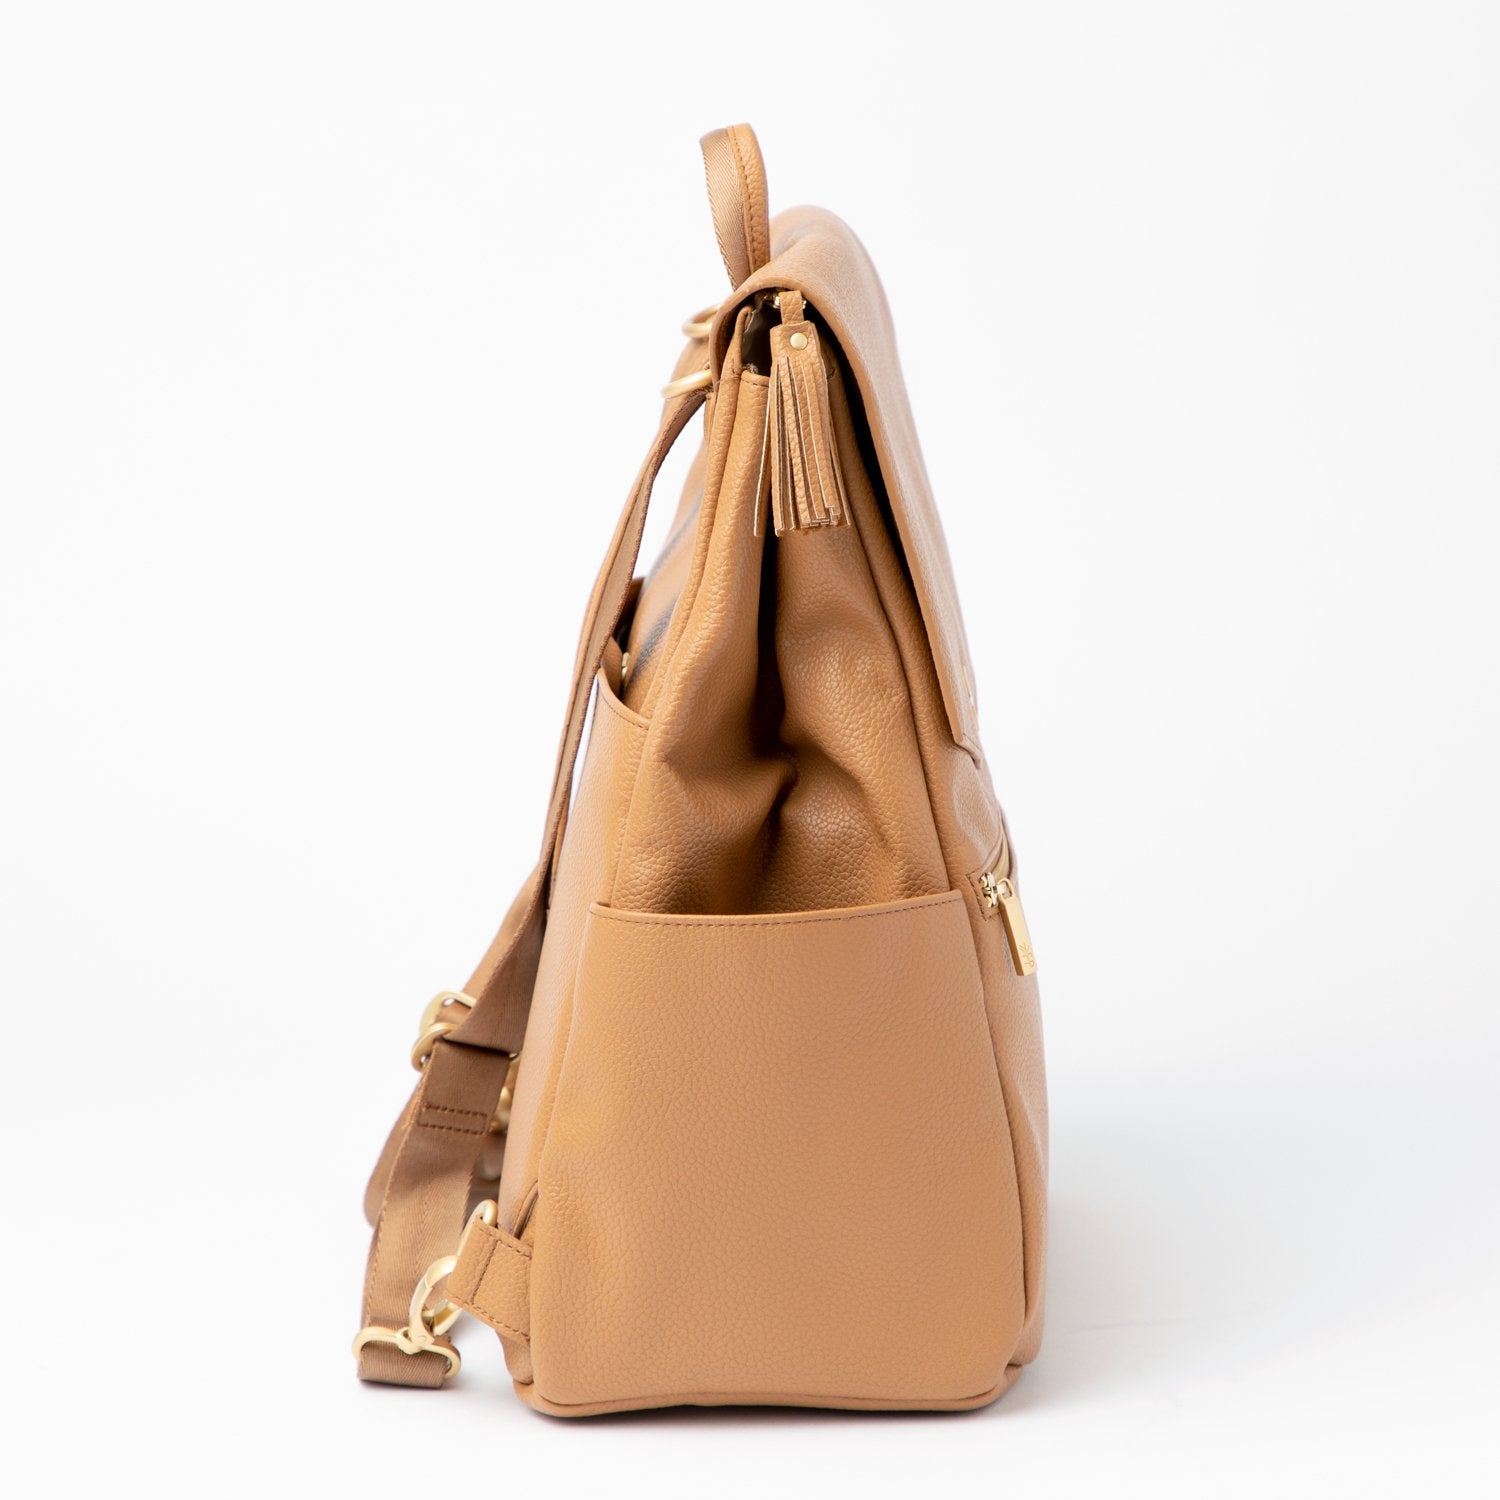 Side profile of Butterscotch diaper bag